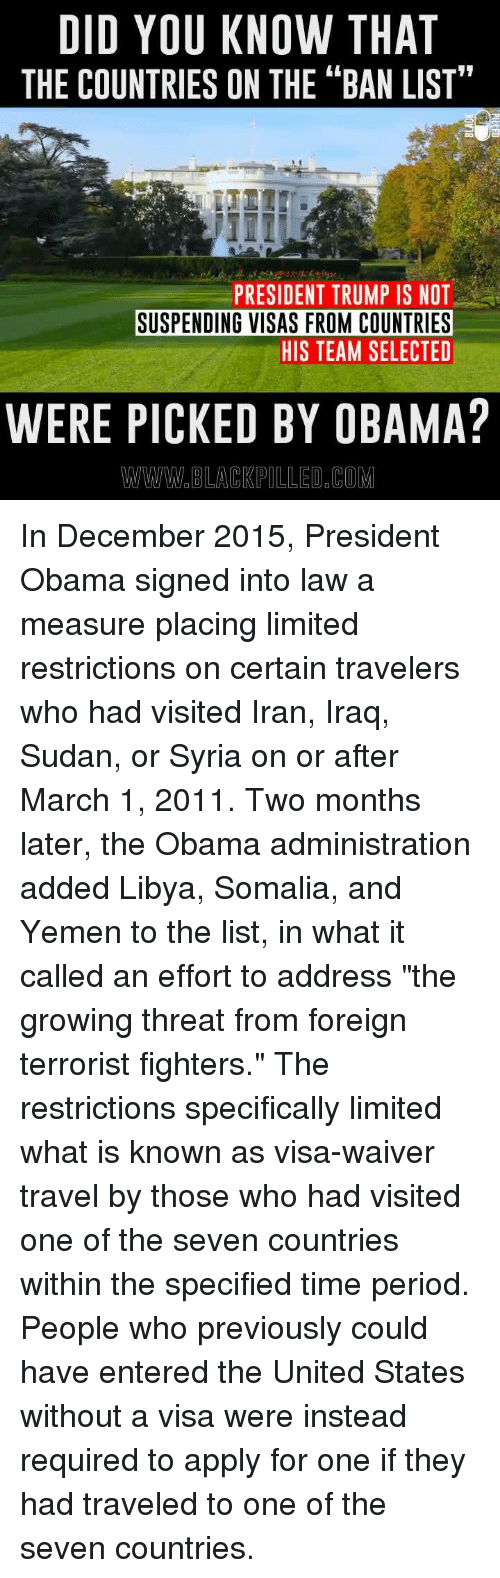 "Memes, Iran, and Iraq: DID YOU KNOW THAT  THE COUNTRIES ON THE ""BAN LIST""  PRESIDENT TRUMP IS NOT  SUSPENDING VISAS FROM COUNTRIES  HIS TEAM SELECTED  WERE PICKED BY OBAMA?  WWW BLACKPILLED COM In December 2015, President Obama signed into law a measure placing limited restrictions on certain travelers who had visited Iran, Iraq, Sudan, or Syria on or after March 1, 2011. Two months later, the Obama administration added Libya, Somalia, and Yemen to the list, in what it called an effort to address ""the growing threat from foreign terrorist fighters.""  The restrictions specifically limited what is known as visa-waiver travel by those who had visited one of the seven countries within the specified time period. People who previously could have entered the United States without a visa were instead required to apply for one if they had traveled to one of the seven countries."